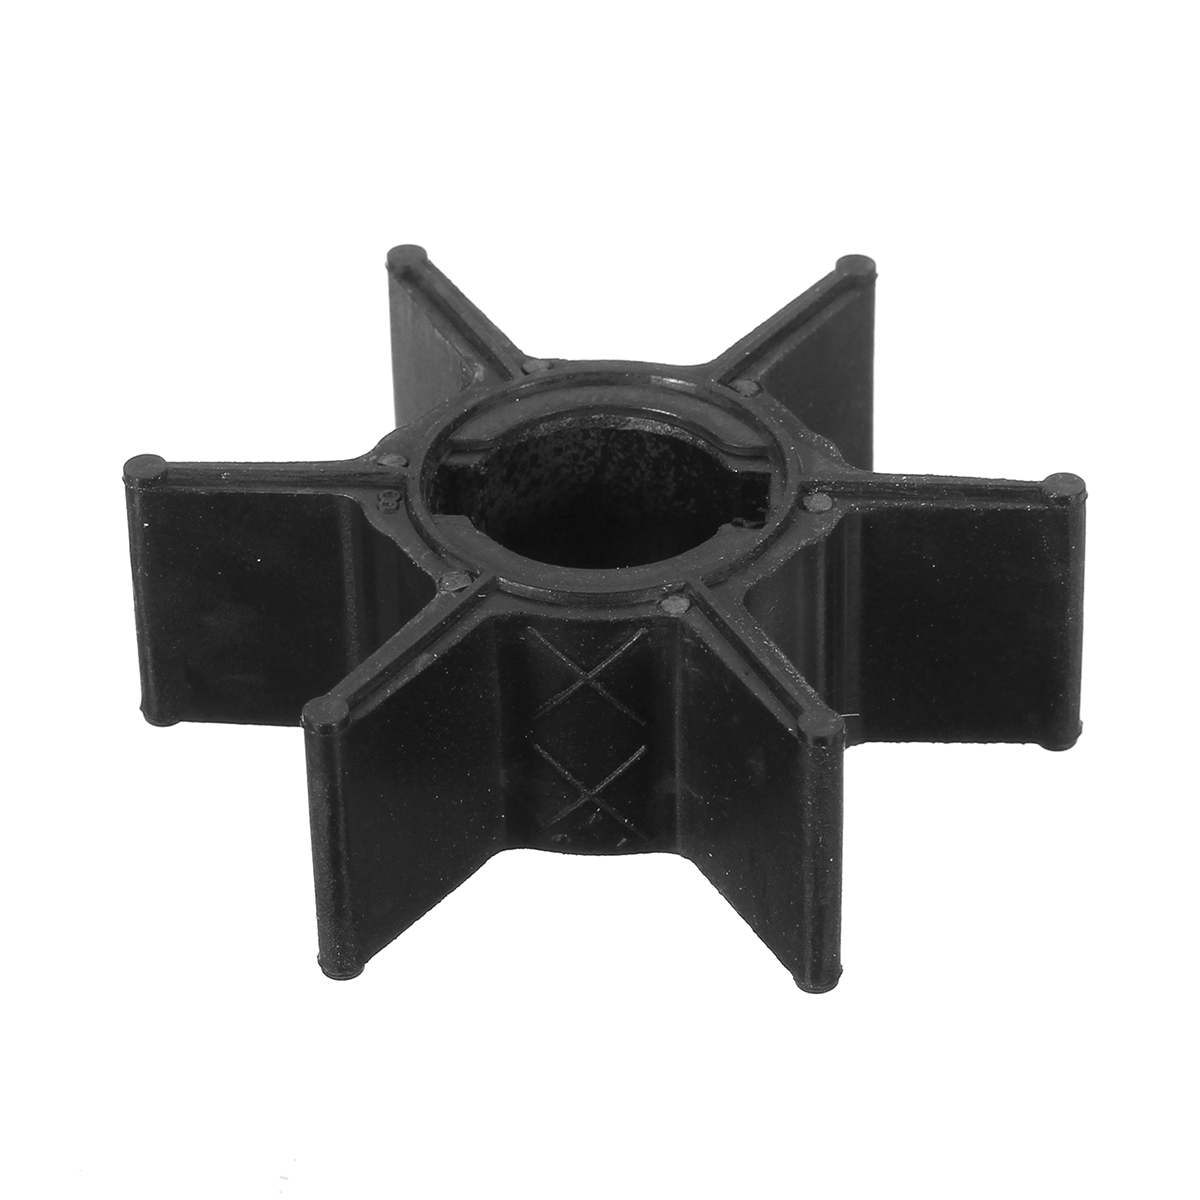 2.5HP 3.5 HP Tohatsu Outboard Parts Water Pump Impeller Replacement 309-65021-1